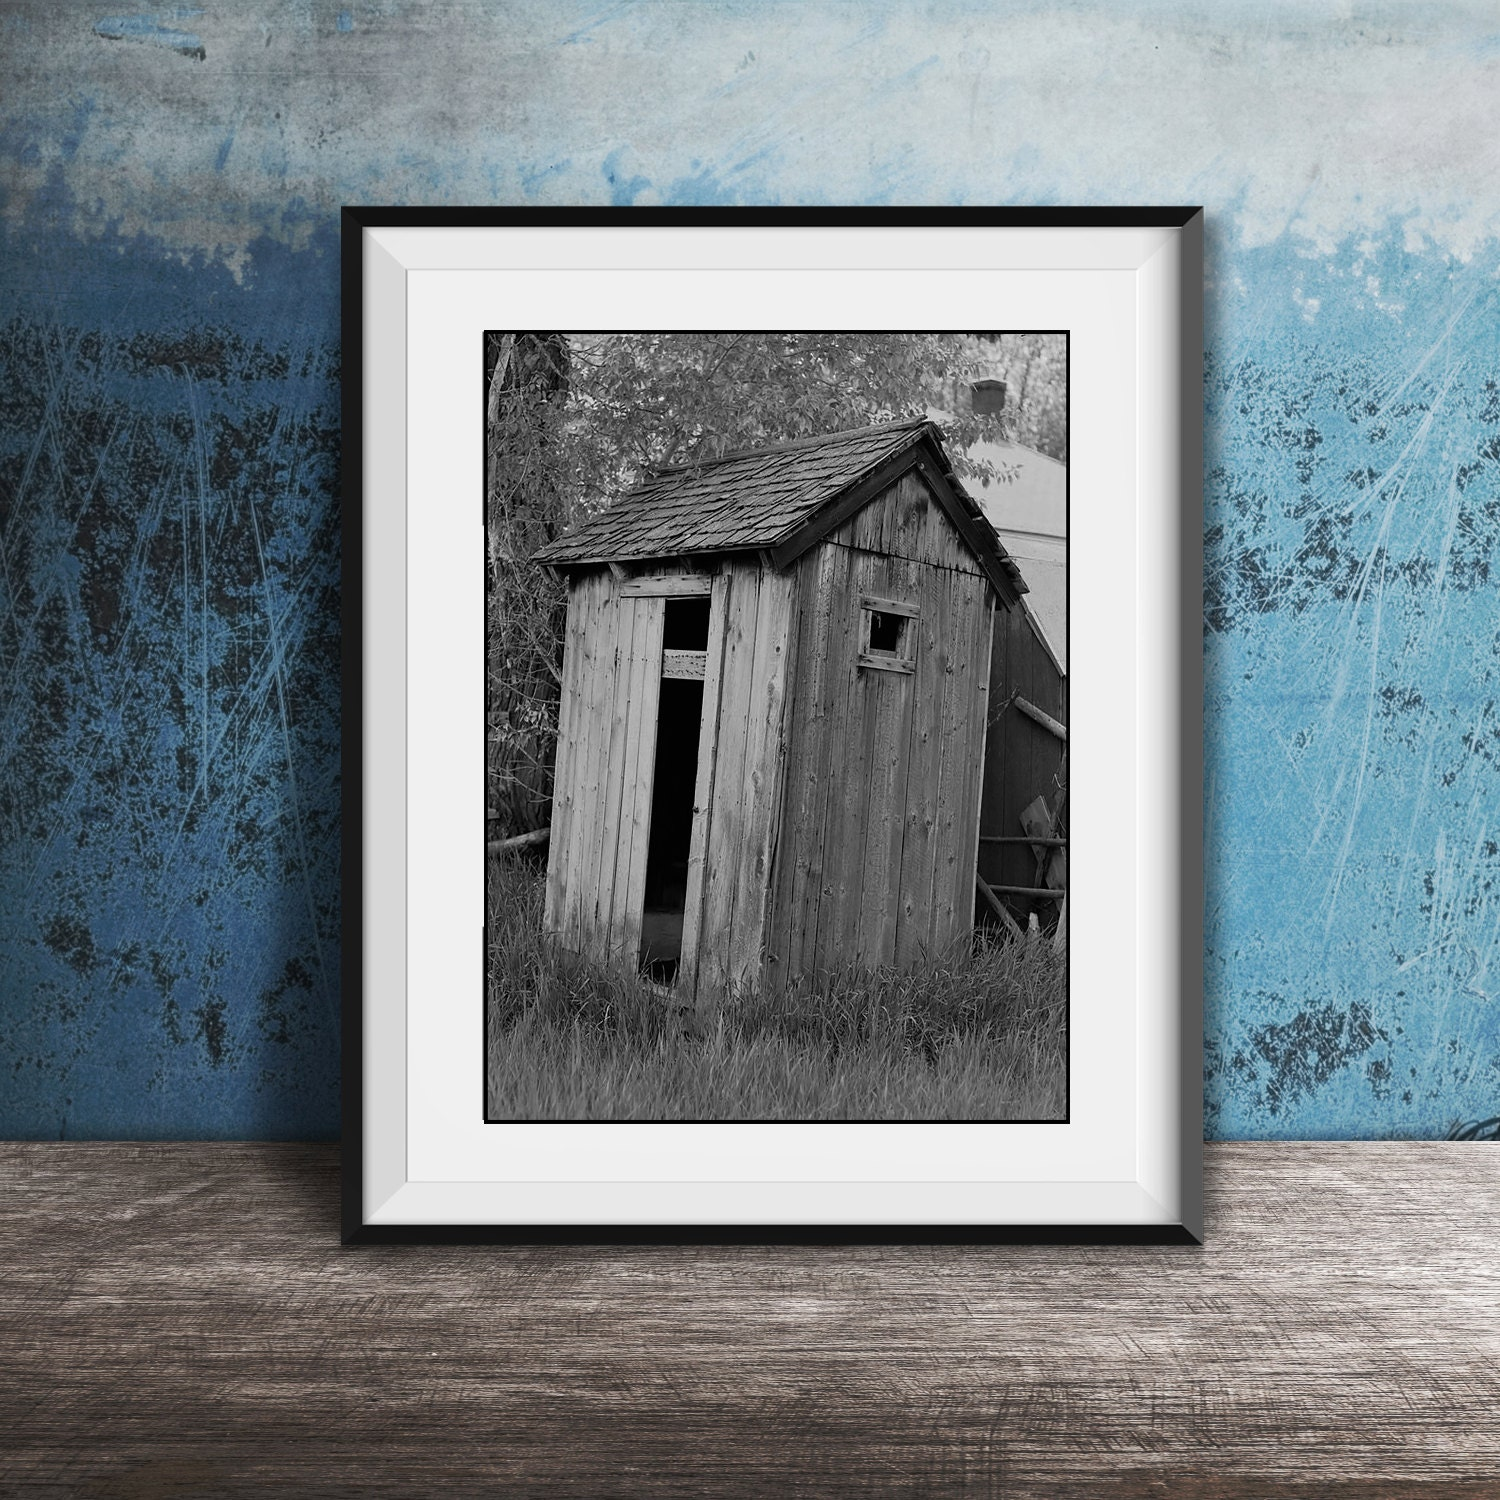 Framed Art Bathroom Bathroom Wall Art Matted And Framed Vintage Outhouse Photo